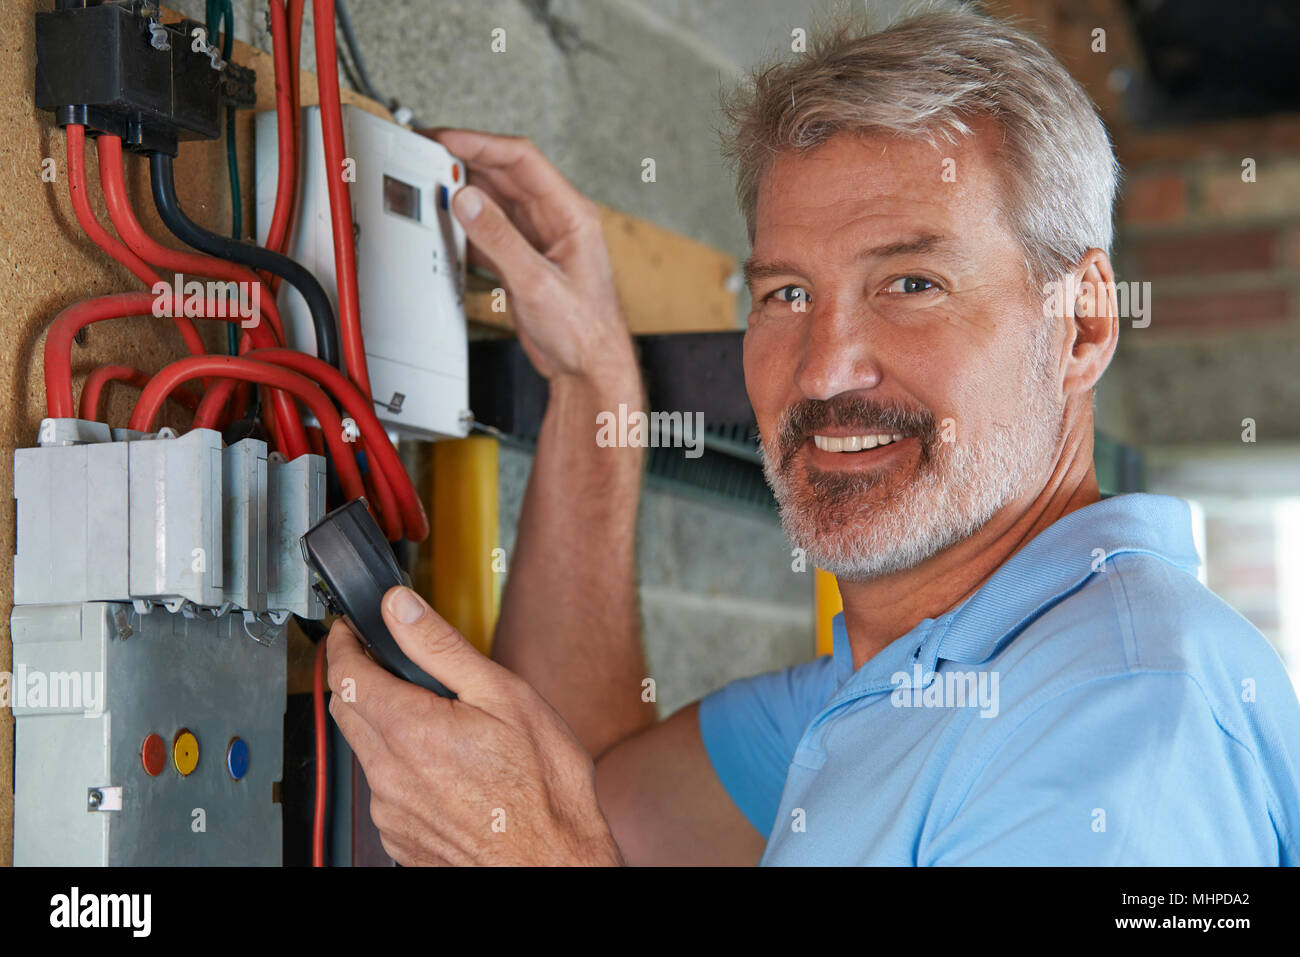 Portrait Of Man Taking Reading From Electricity Meter - Stock Image